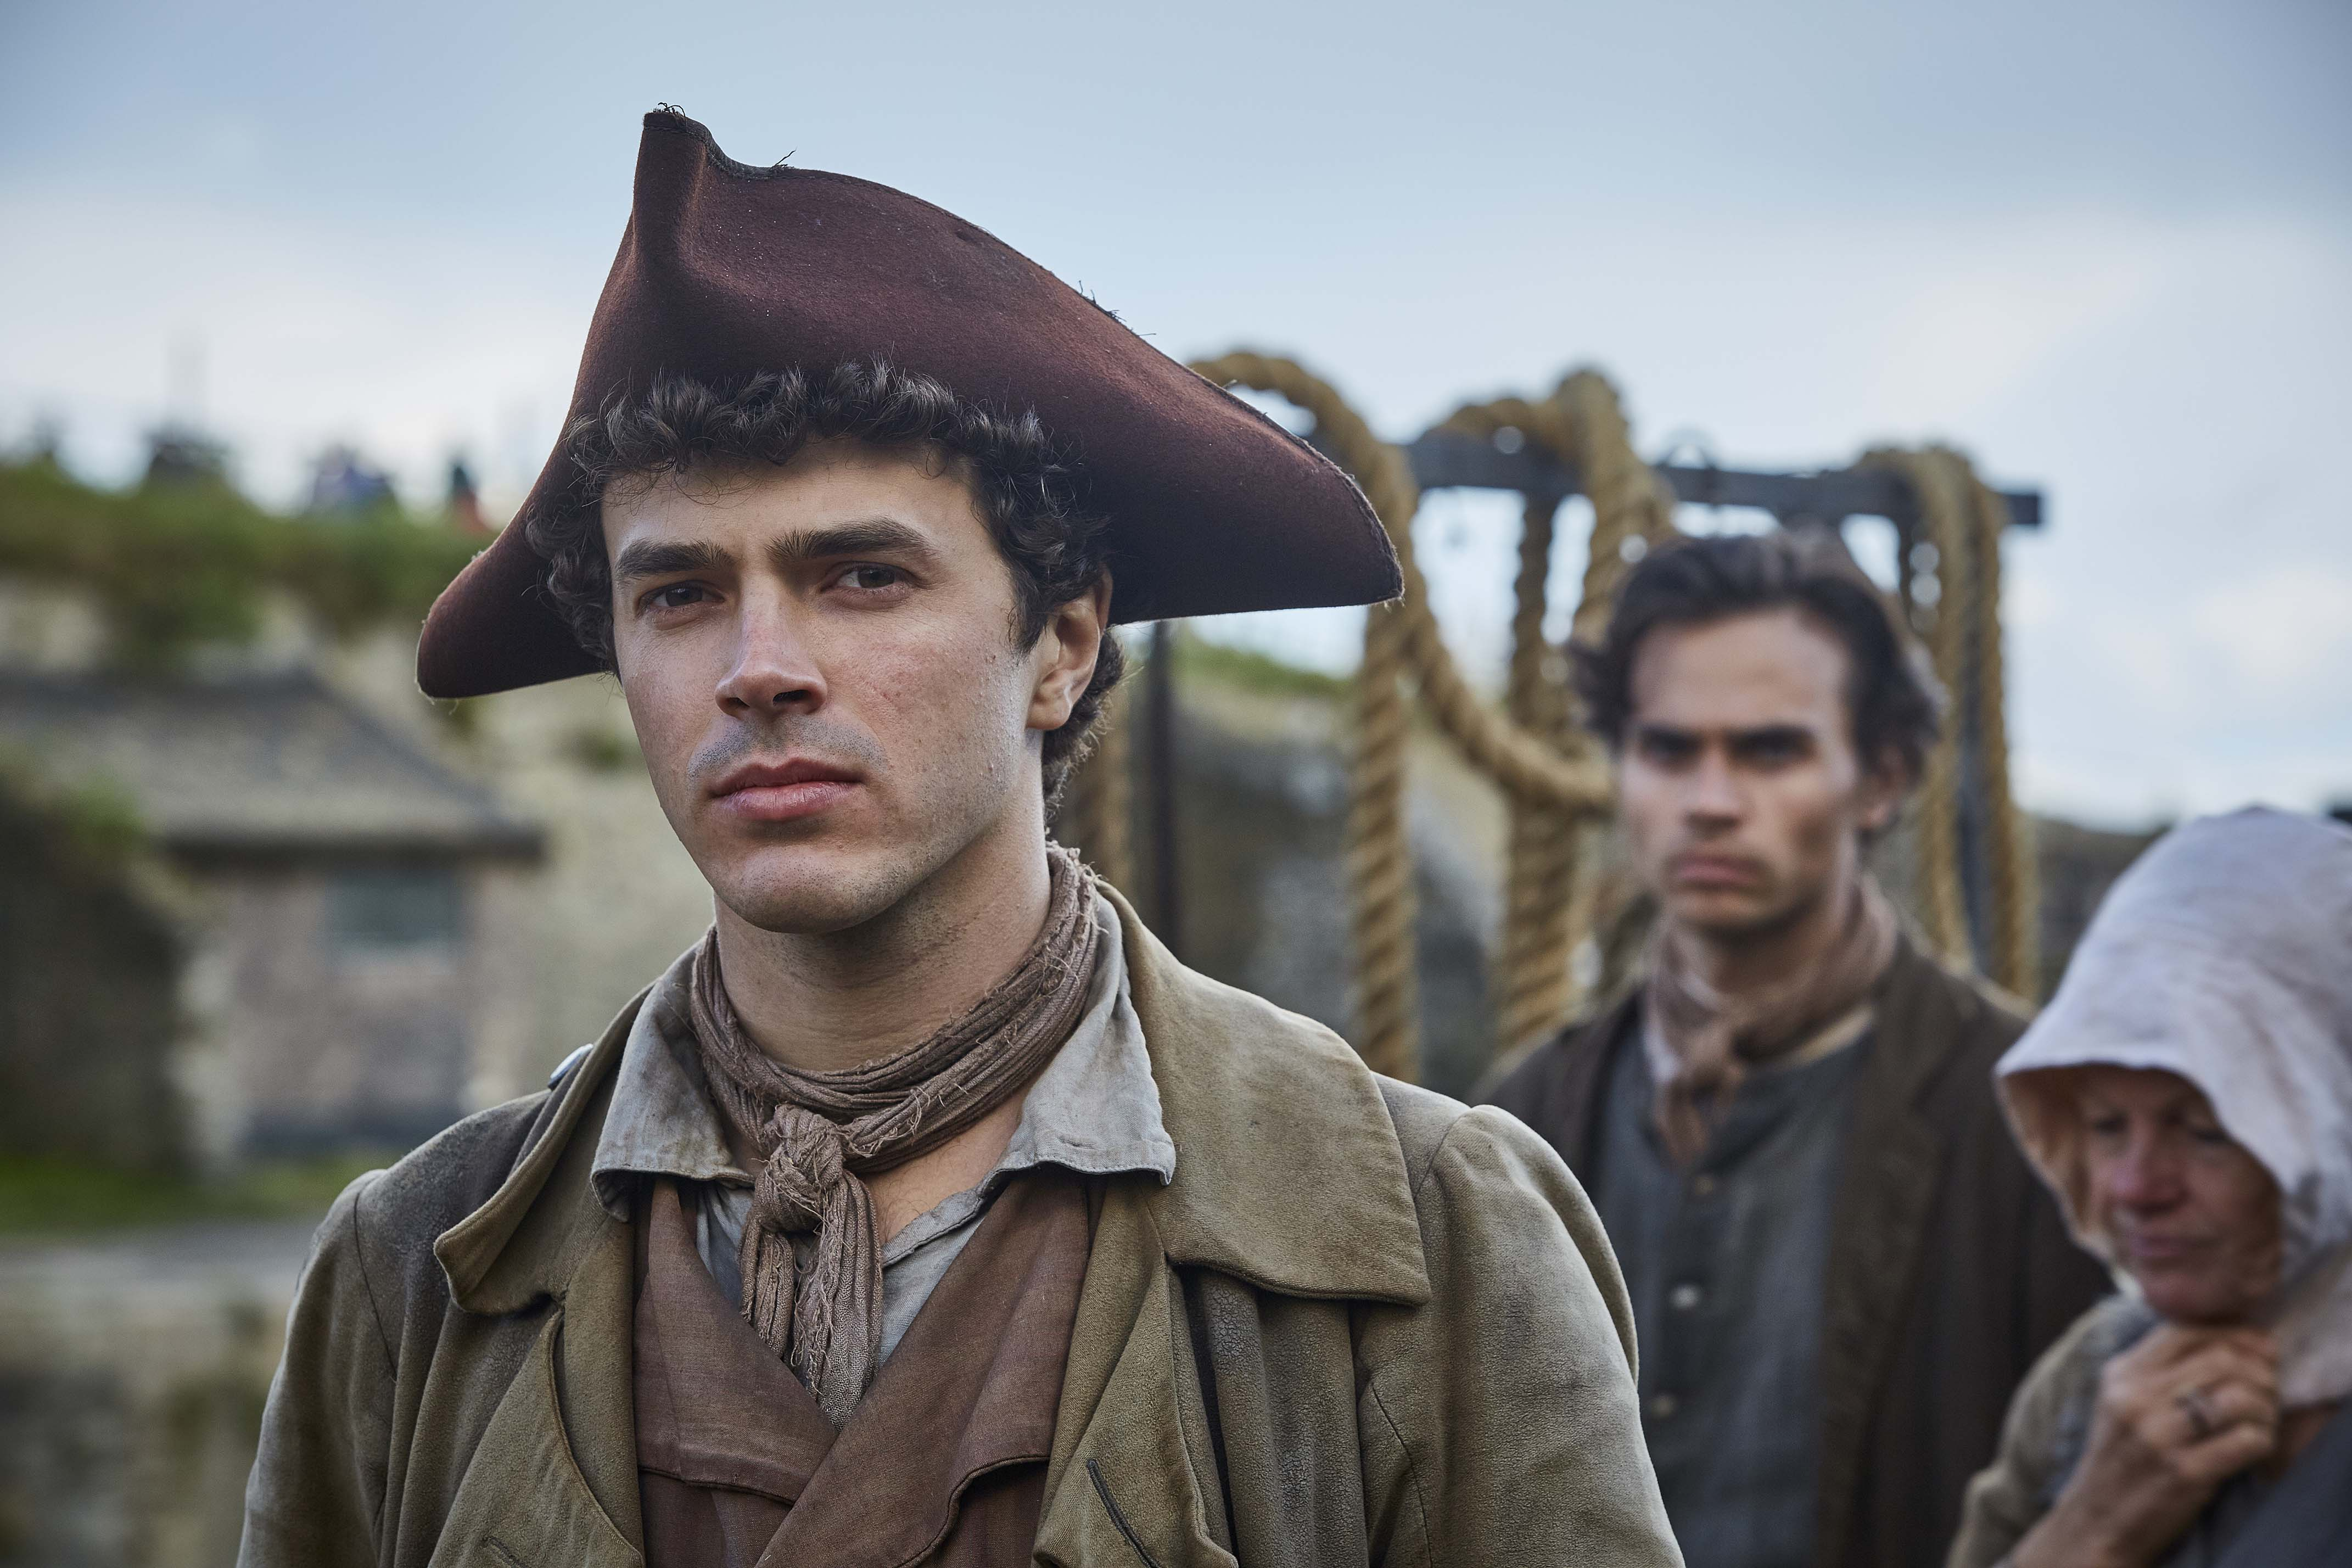 WARNING: Embargoed for publication until 00:00:01 on 05/06/2018 - Programme Name: Poldark - Series 4 - TX: n/a - Episode: Poldark S4 - EP1 (No. 1) - Picture Shows: ***EMBARGOED TILL 5TH JUNE*** Drake Carne (HARRY RICHARDSON) - (C) Mammoth Screen - Photographer: Mike Hogan